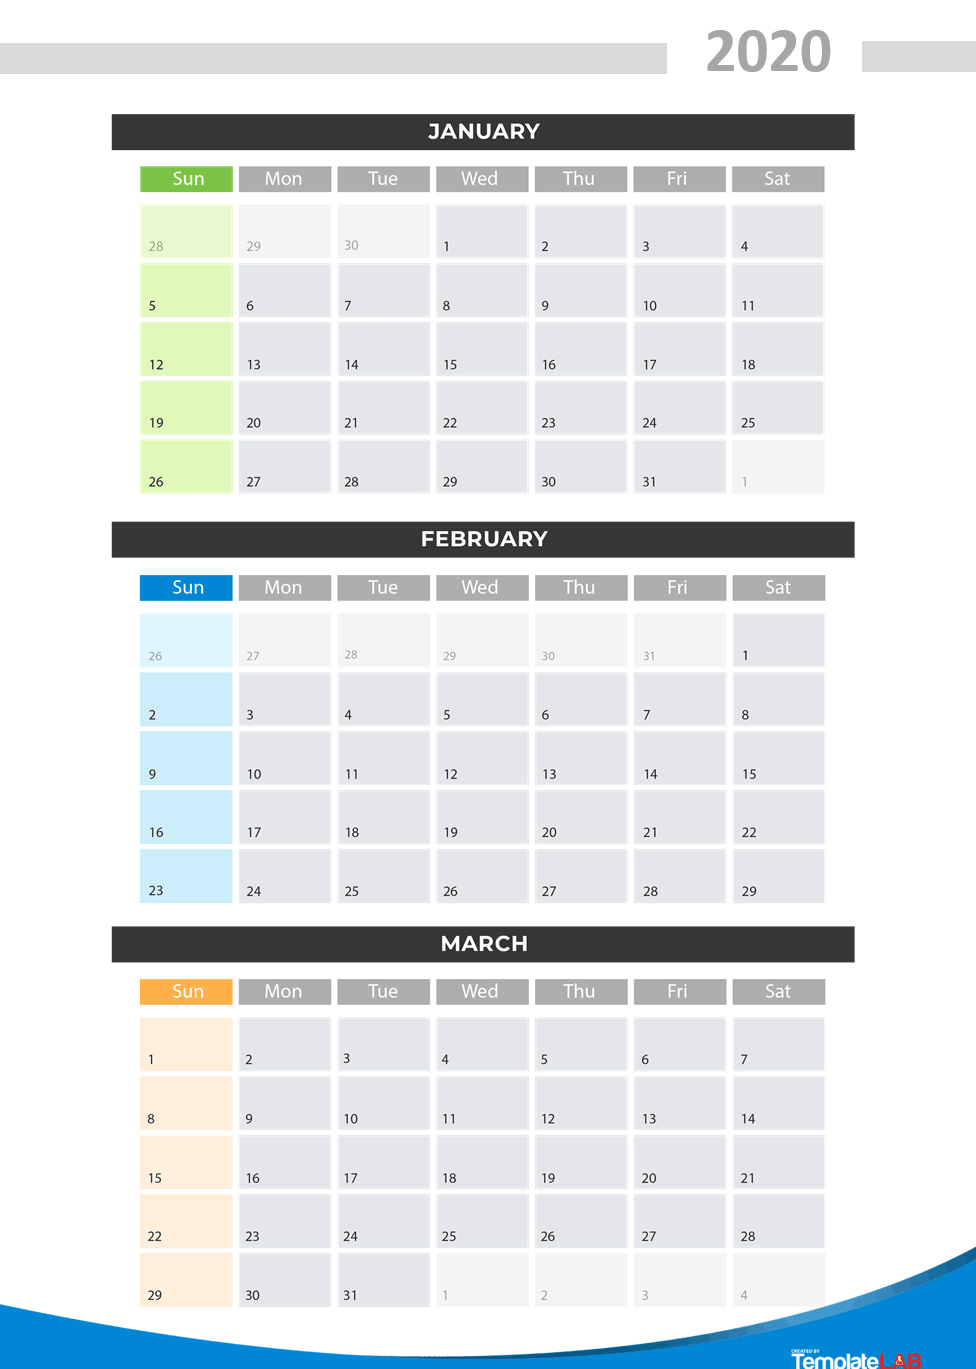 2020 Printable Calendars [Monthly, With Holidays, Yearly] ᐅ intended for Quarterly Calendar 2020 Excel